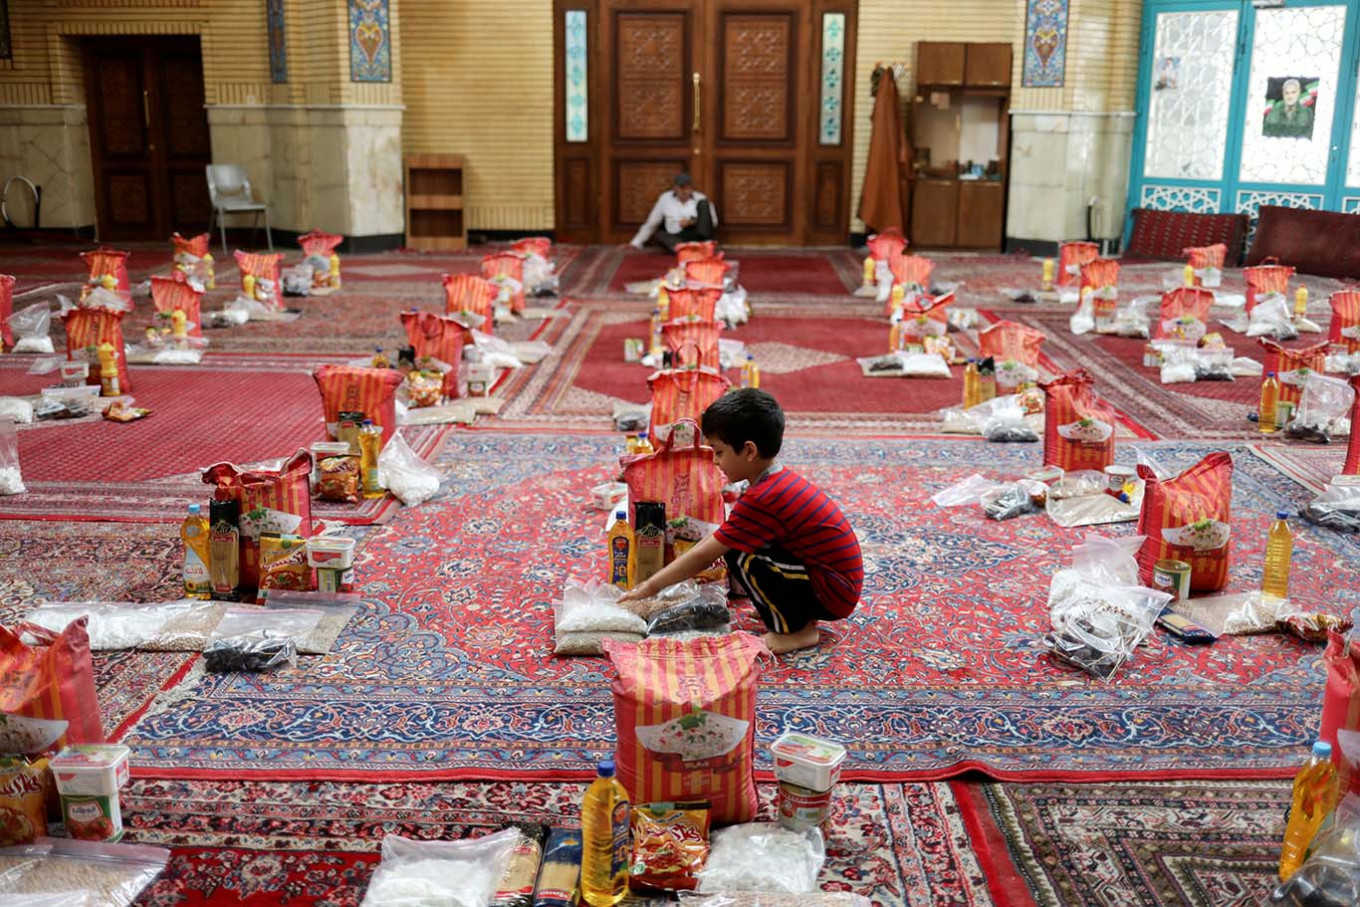 Mosques and schools to reopen in Iran's low-risk areas